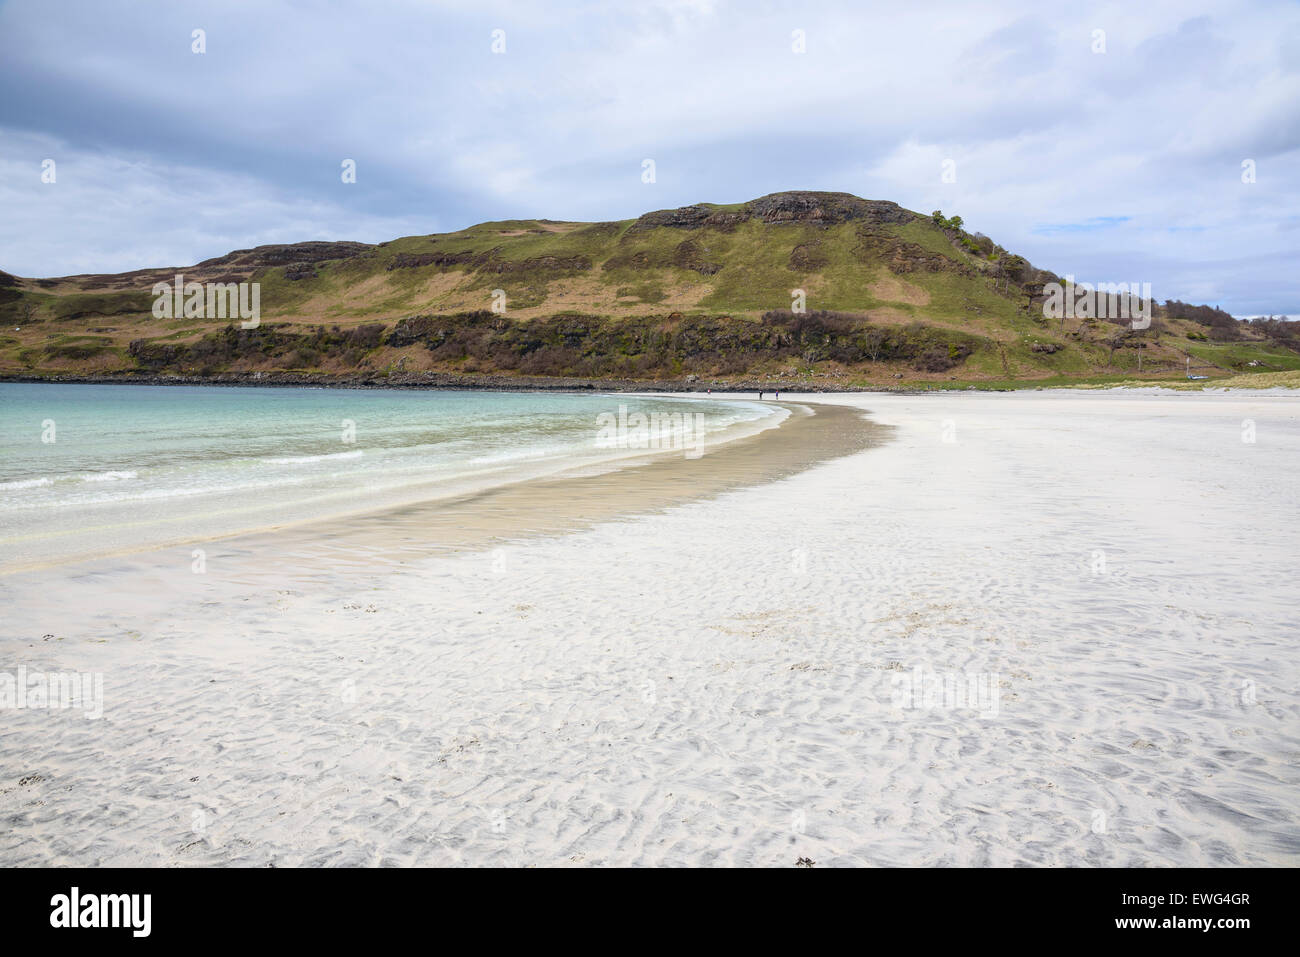 Calgary Bay, Isle of Mull, Hebrides, Argyll and Bute, Scotland - Stock Image